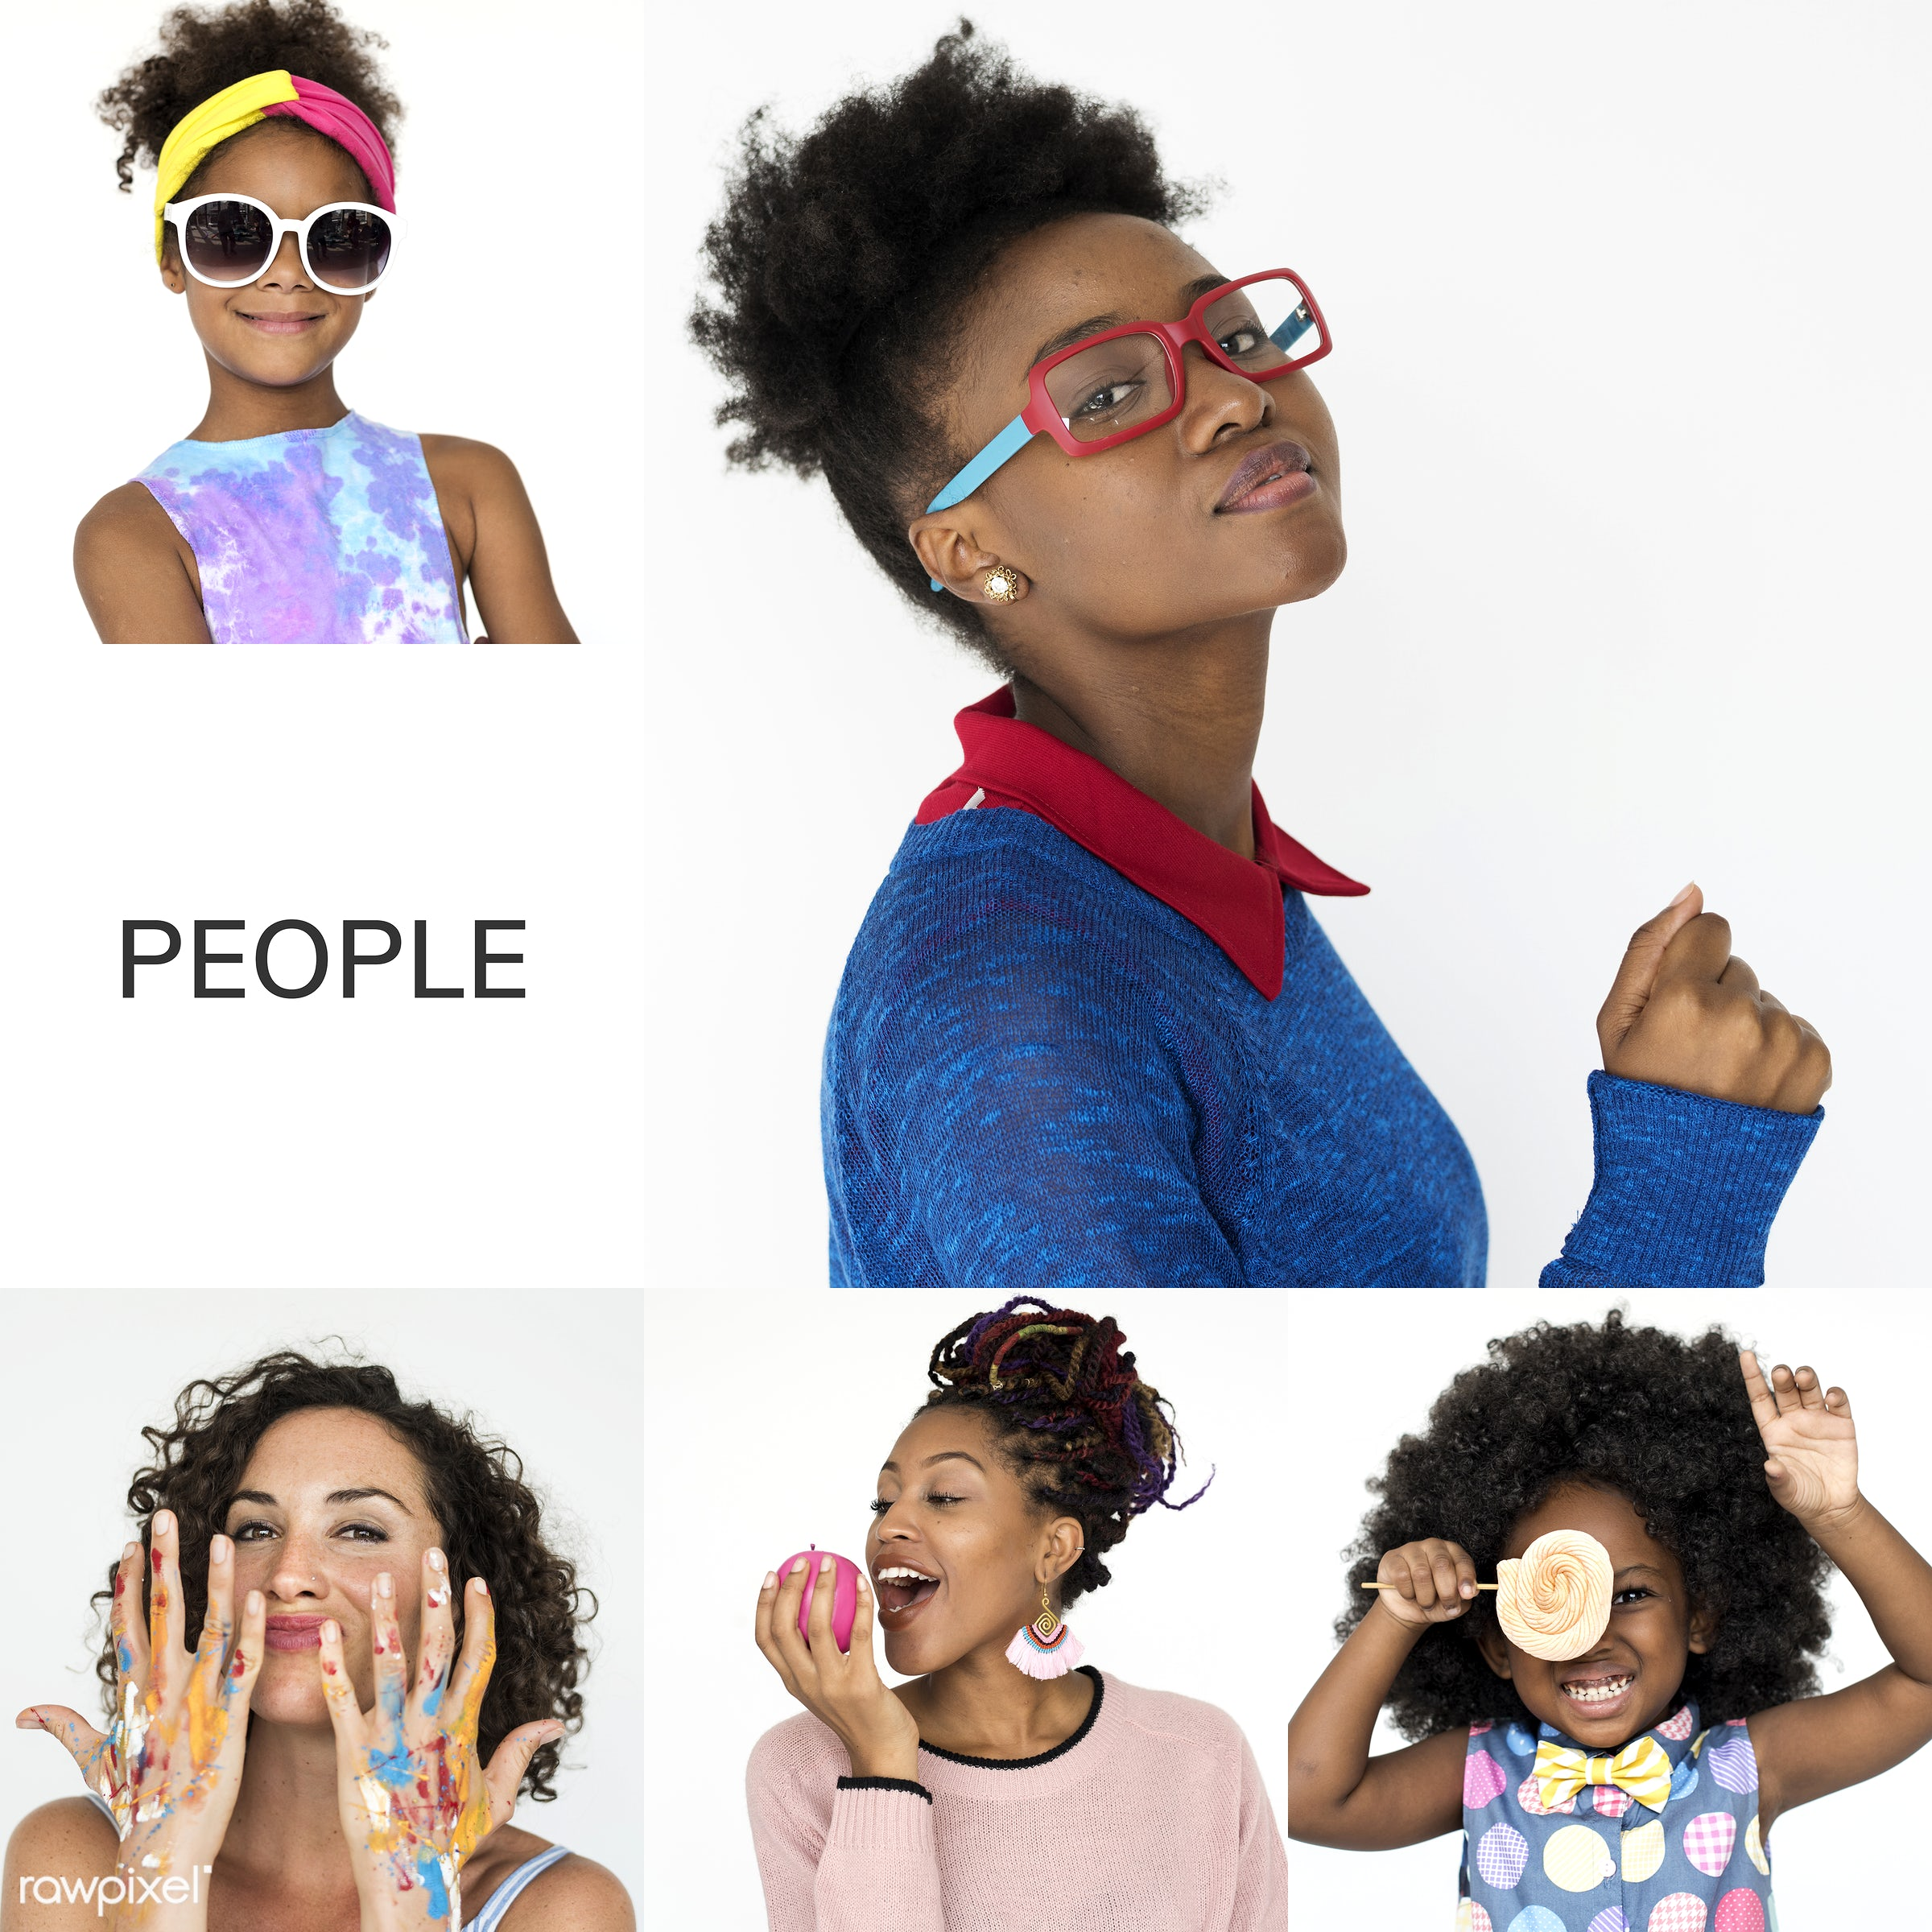 studio, playful, diverse, set, children, collection, hilarious, people, kid, face expression, nerd, style, crazy, woman,...